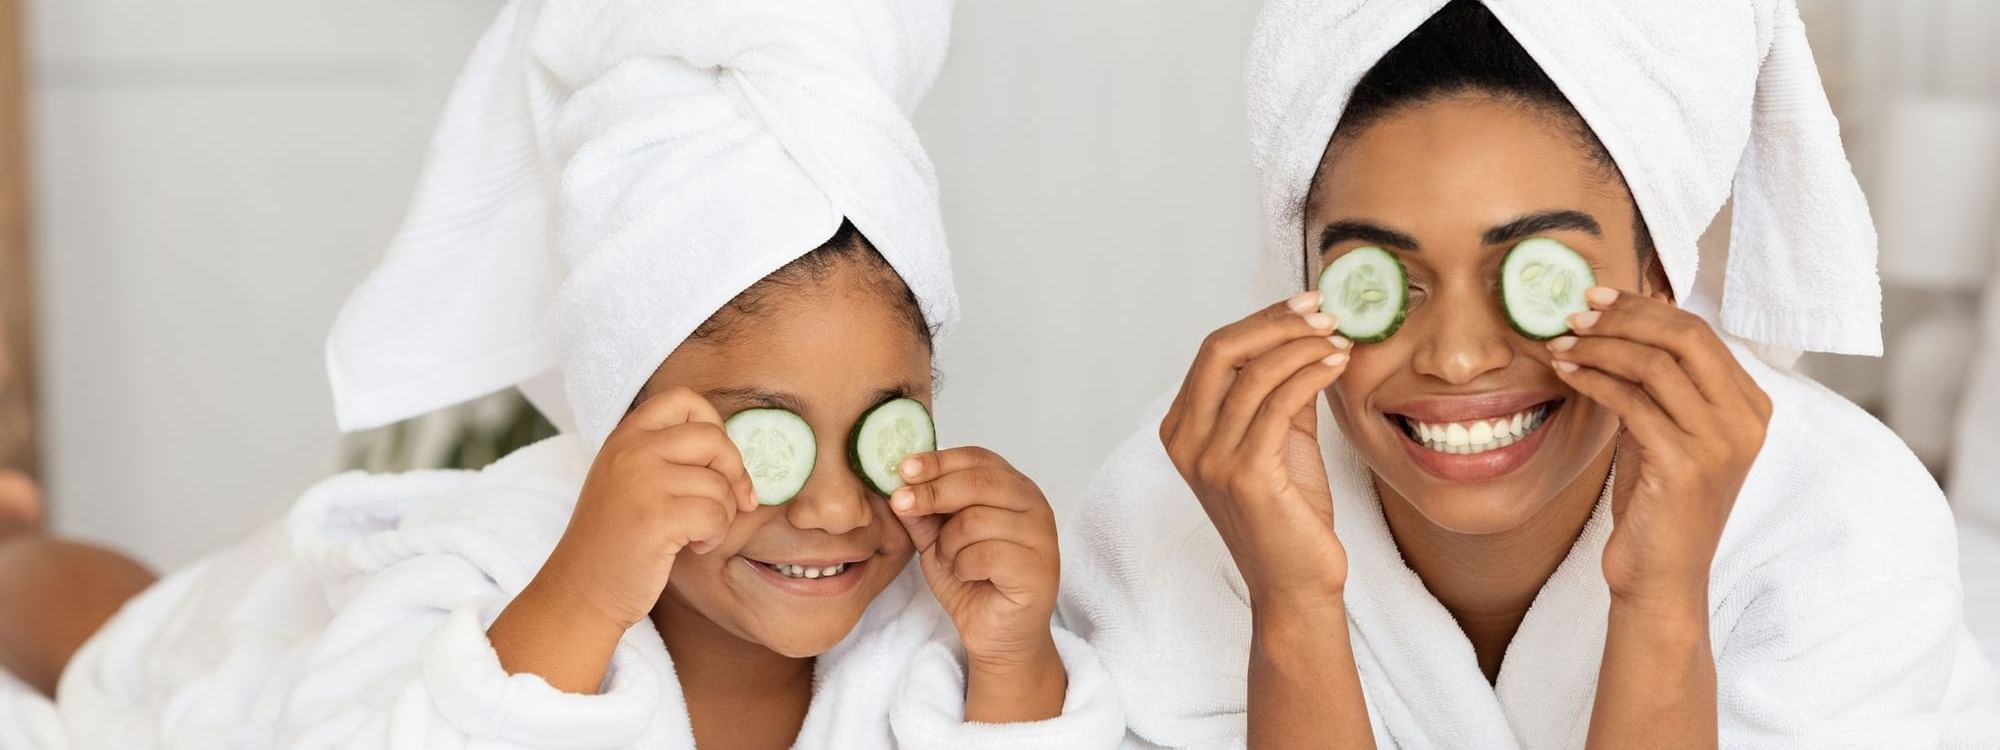 Two people having facial treatments at Daydream Island Resort